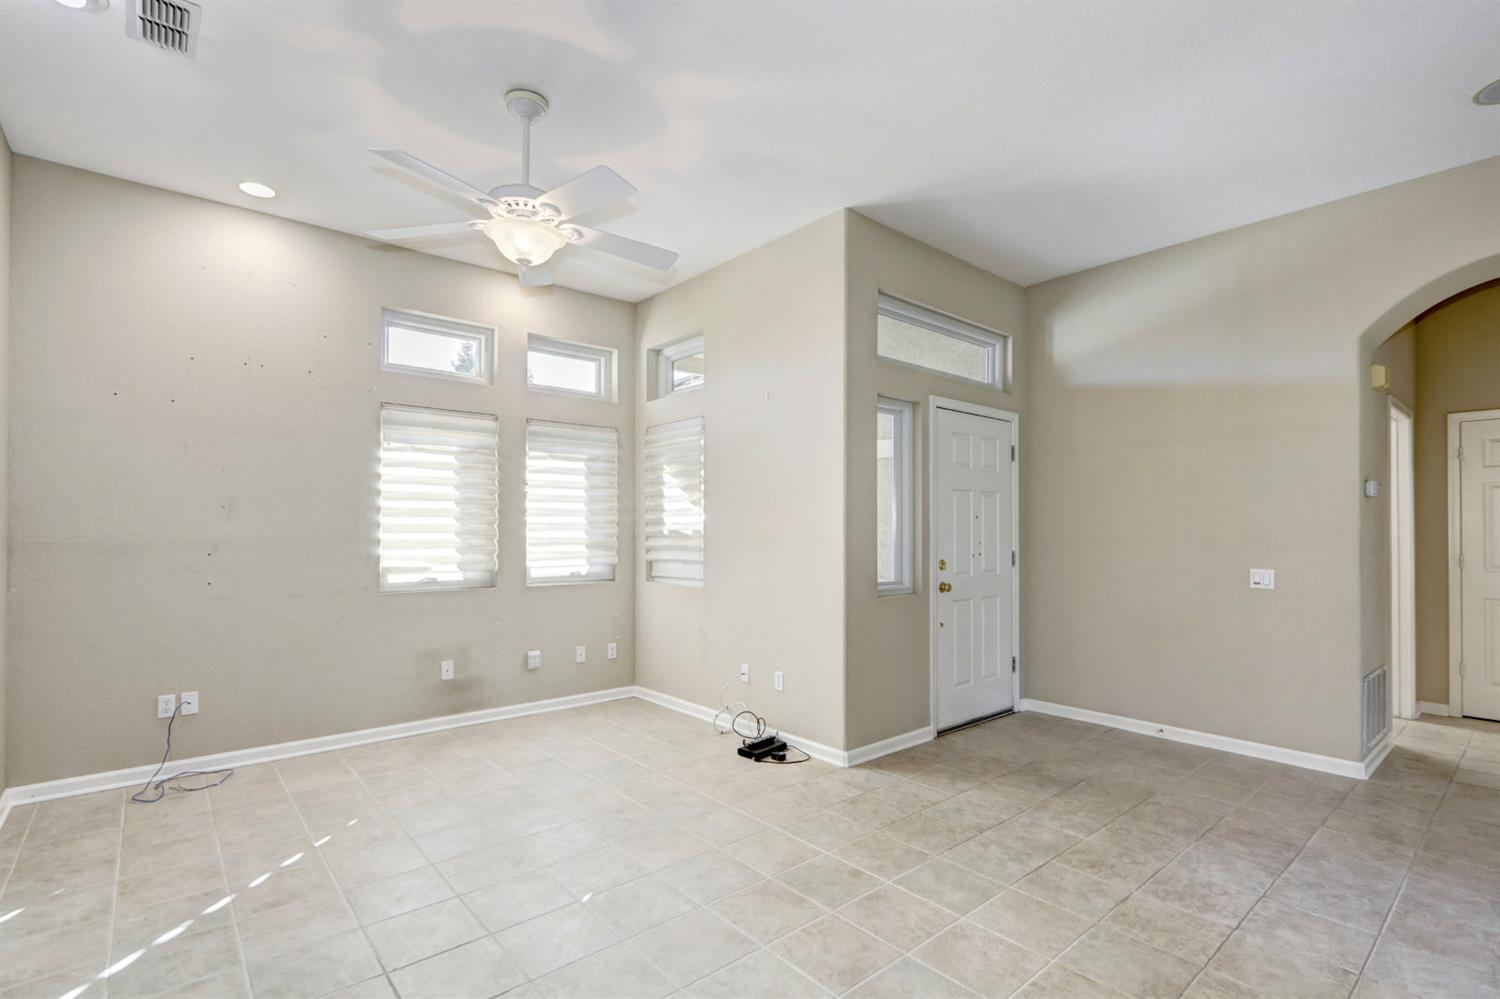 Photo 5 for Listing #221084560